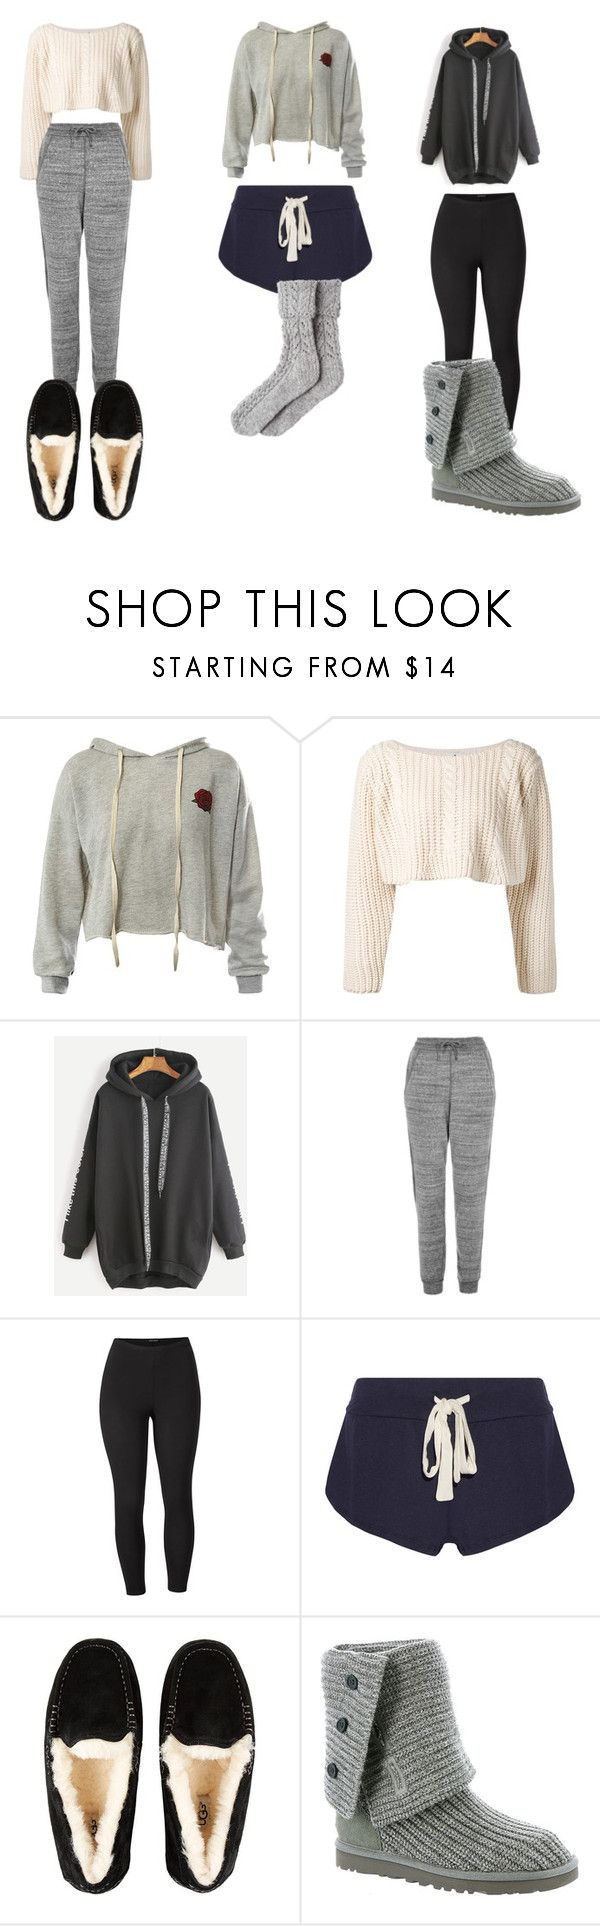 """""""Lazy Day Outfits"""" by hpcrazy ❤ liked on Polyvore featuring Sans Souci, UNIF, Ivy Park, Venus, Eberjey, UGG, UGG Australia and plus size clothing"""